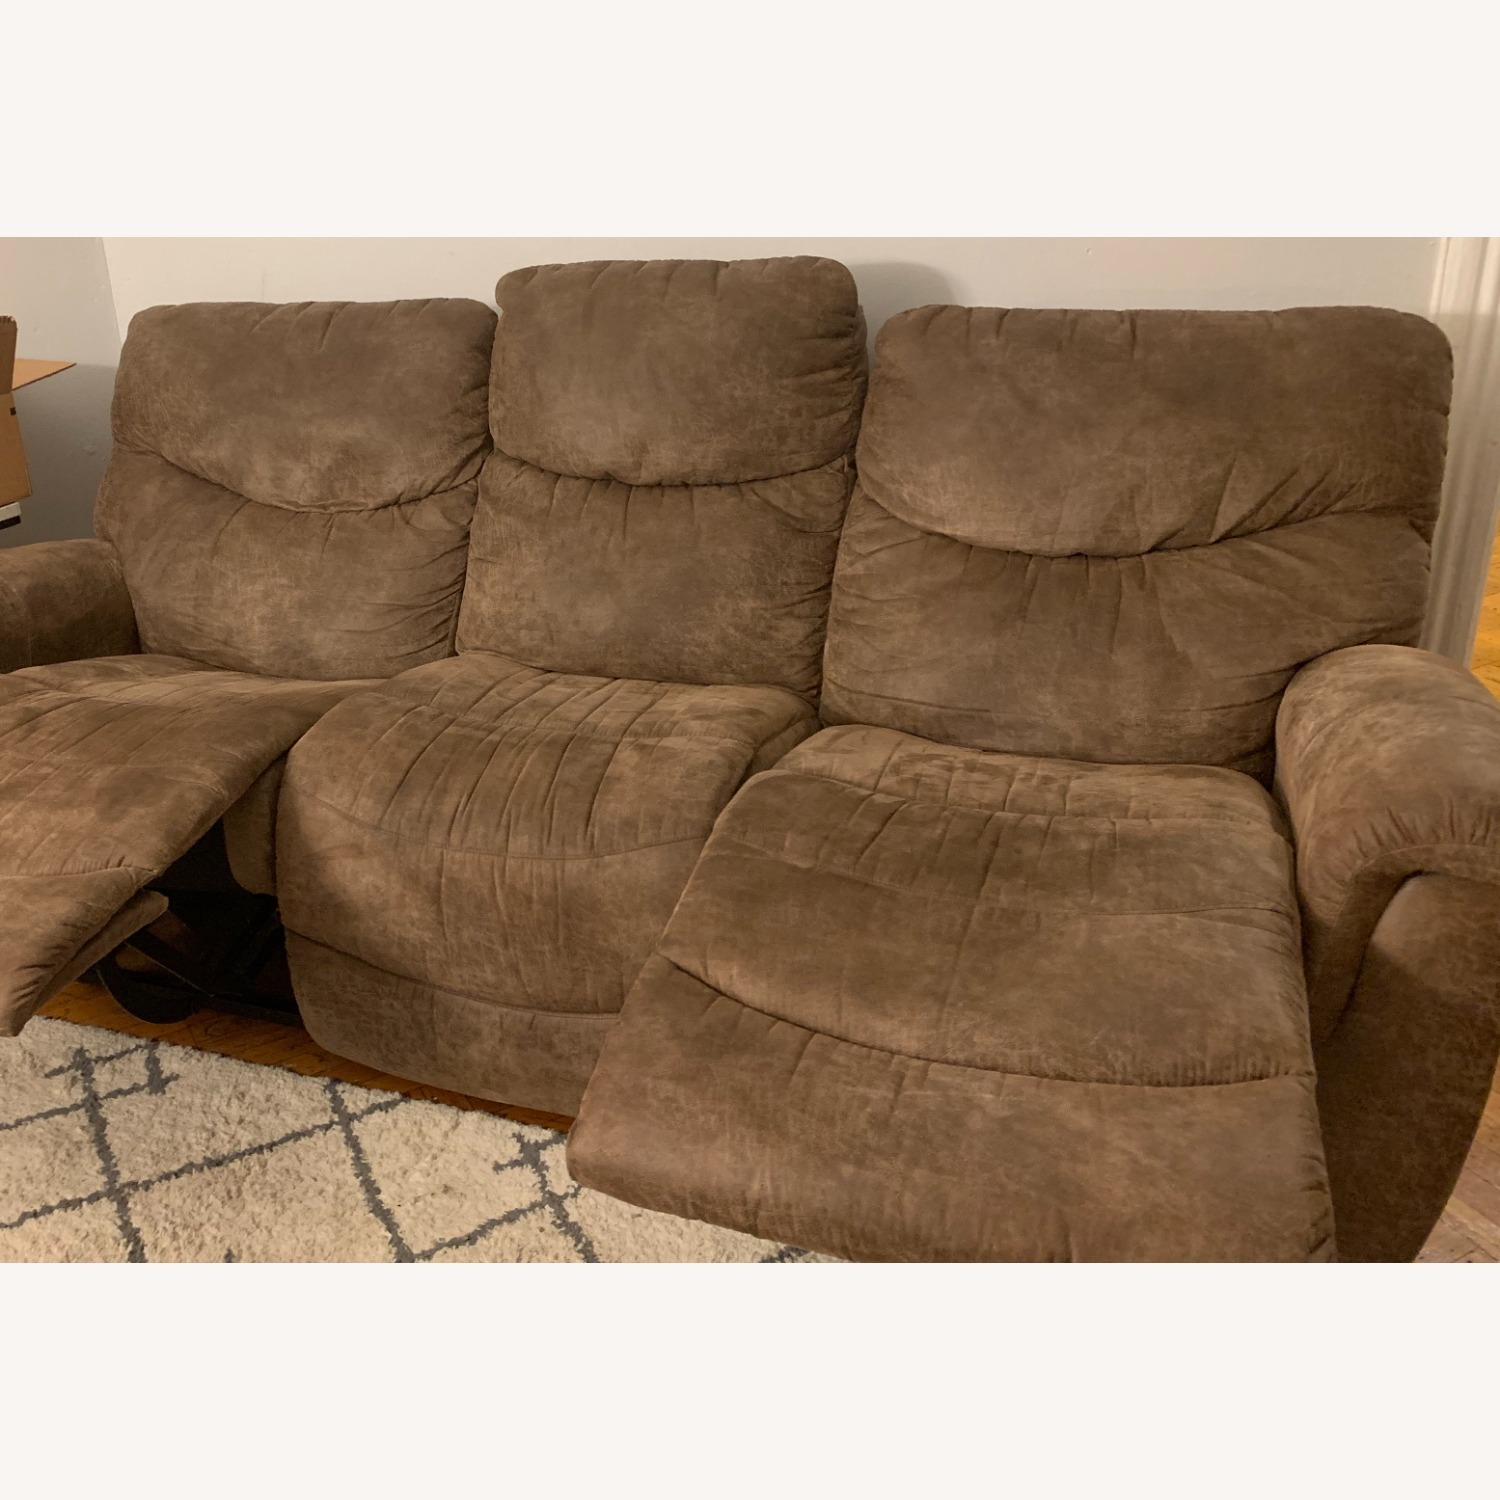 La-Z-Boy Ddual Reclining Couch - brown - image-3